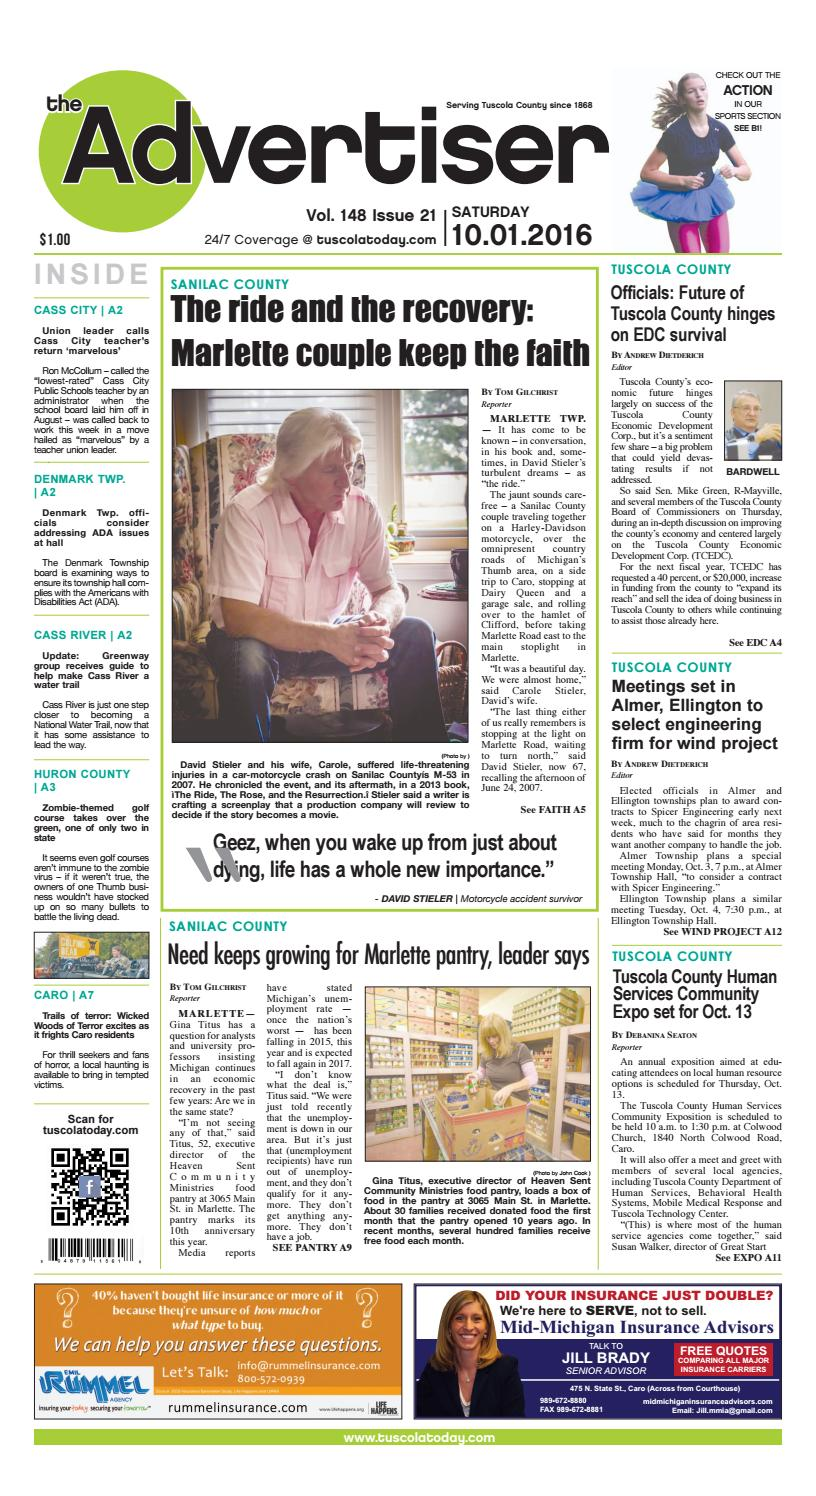 Tca 10 01 16 all pages by Tuscola County Advertiser - issuu